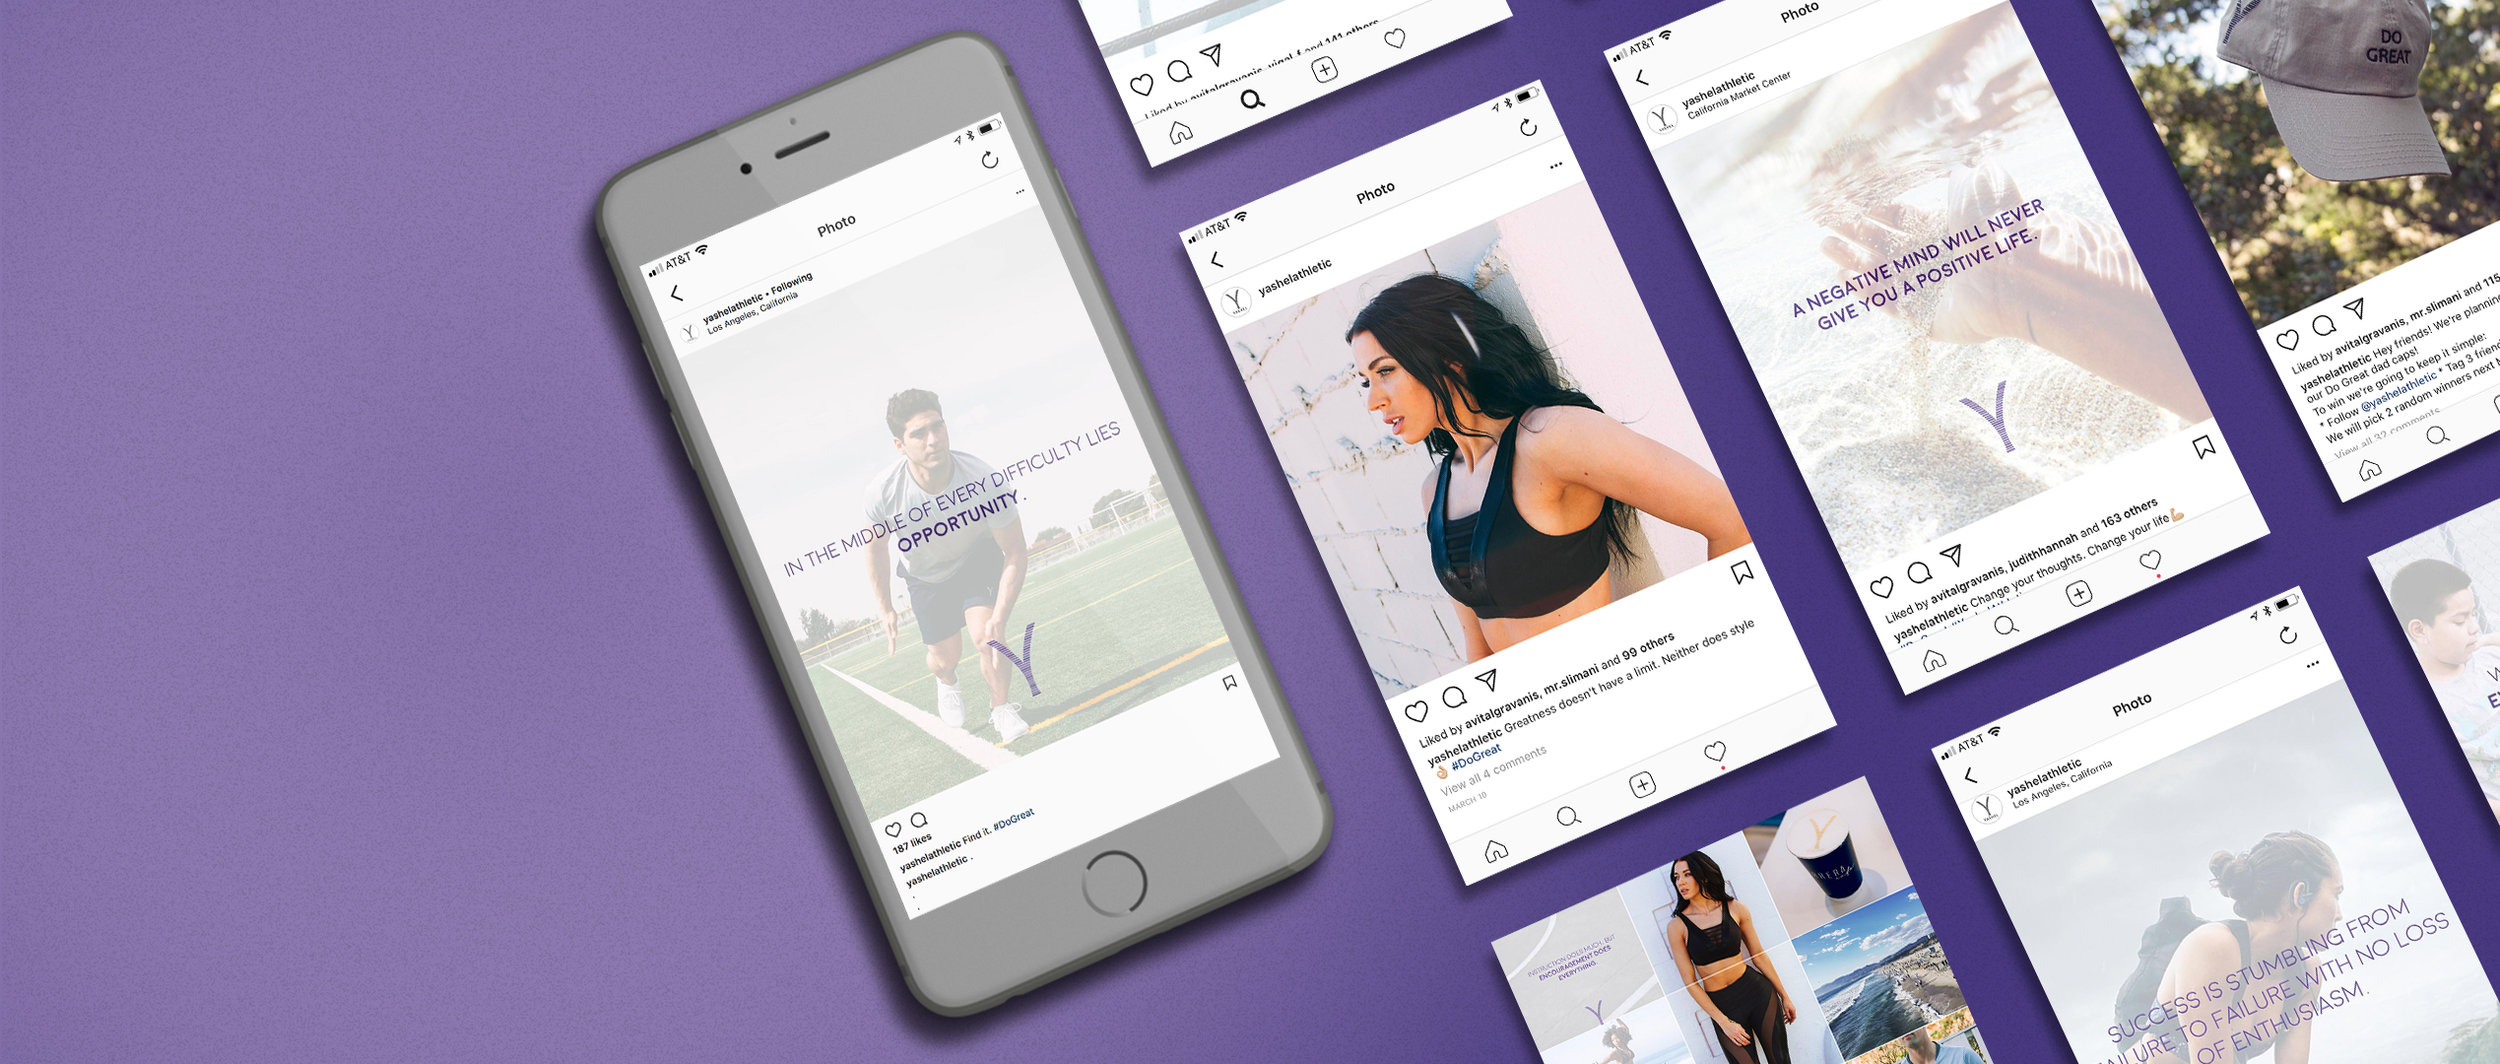 Yashel Athletic - creative direction + social media designs + video/photo production